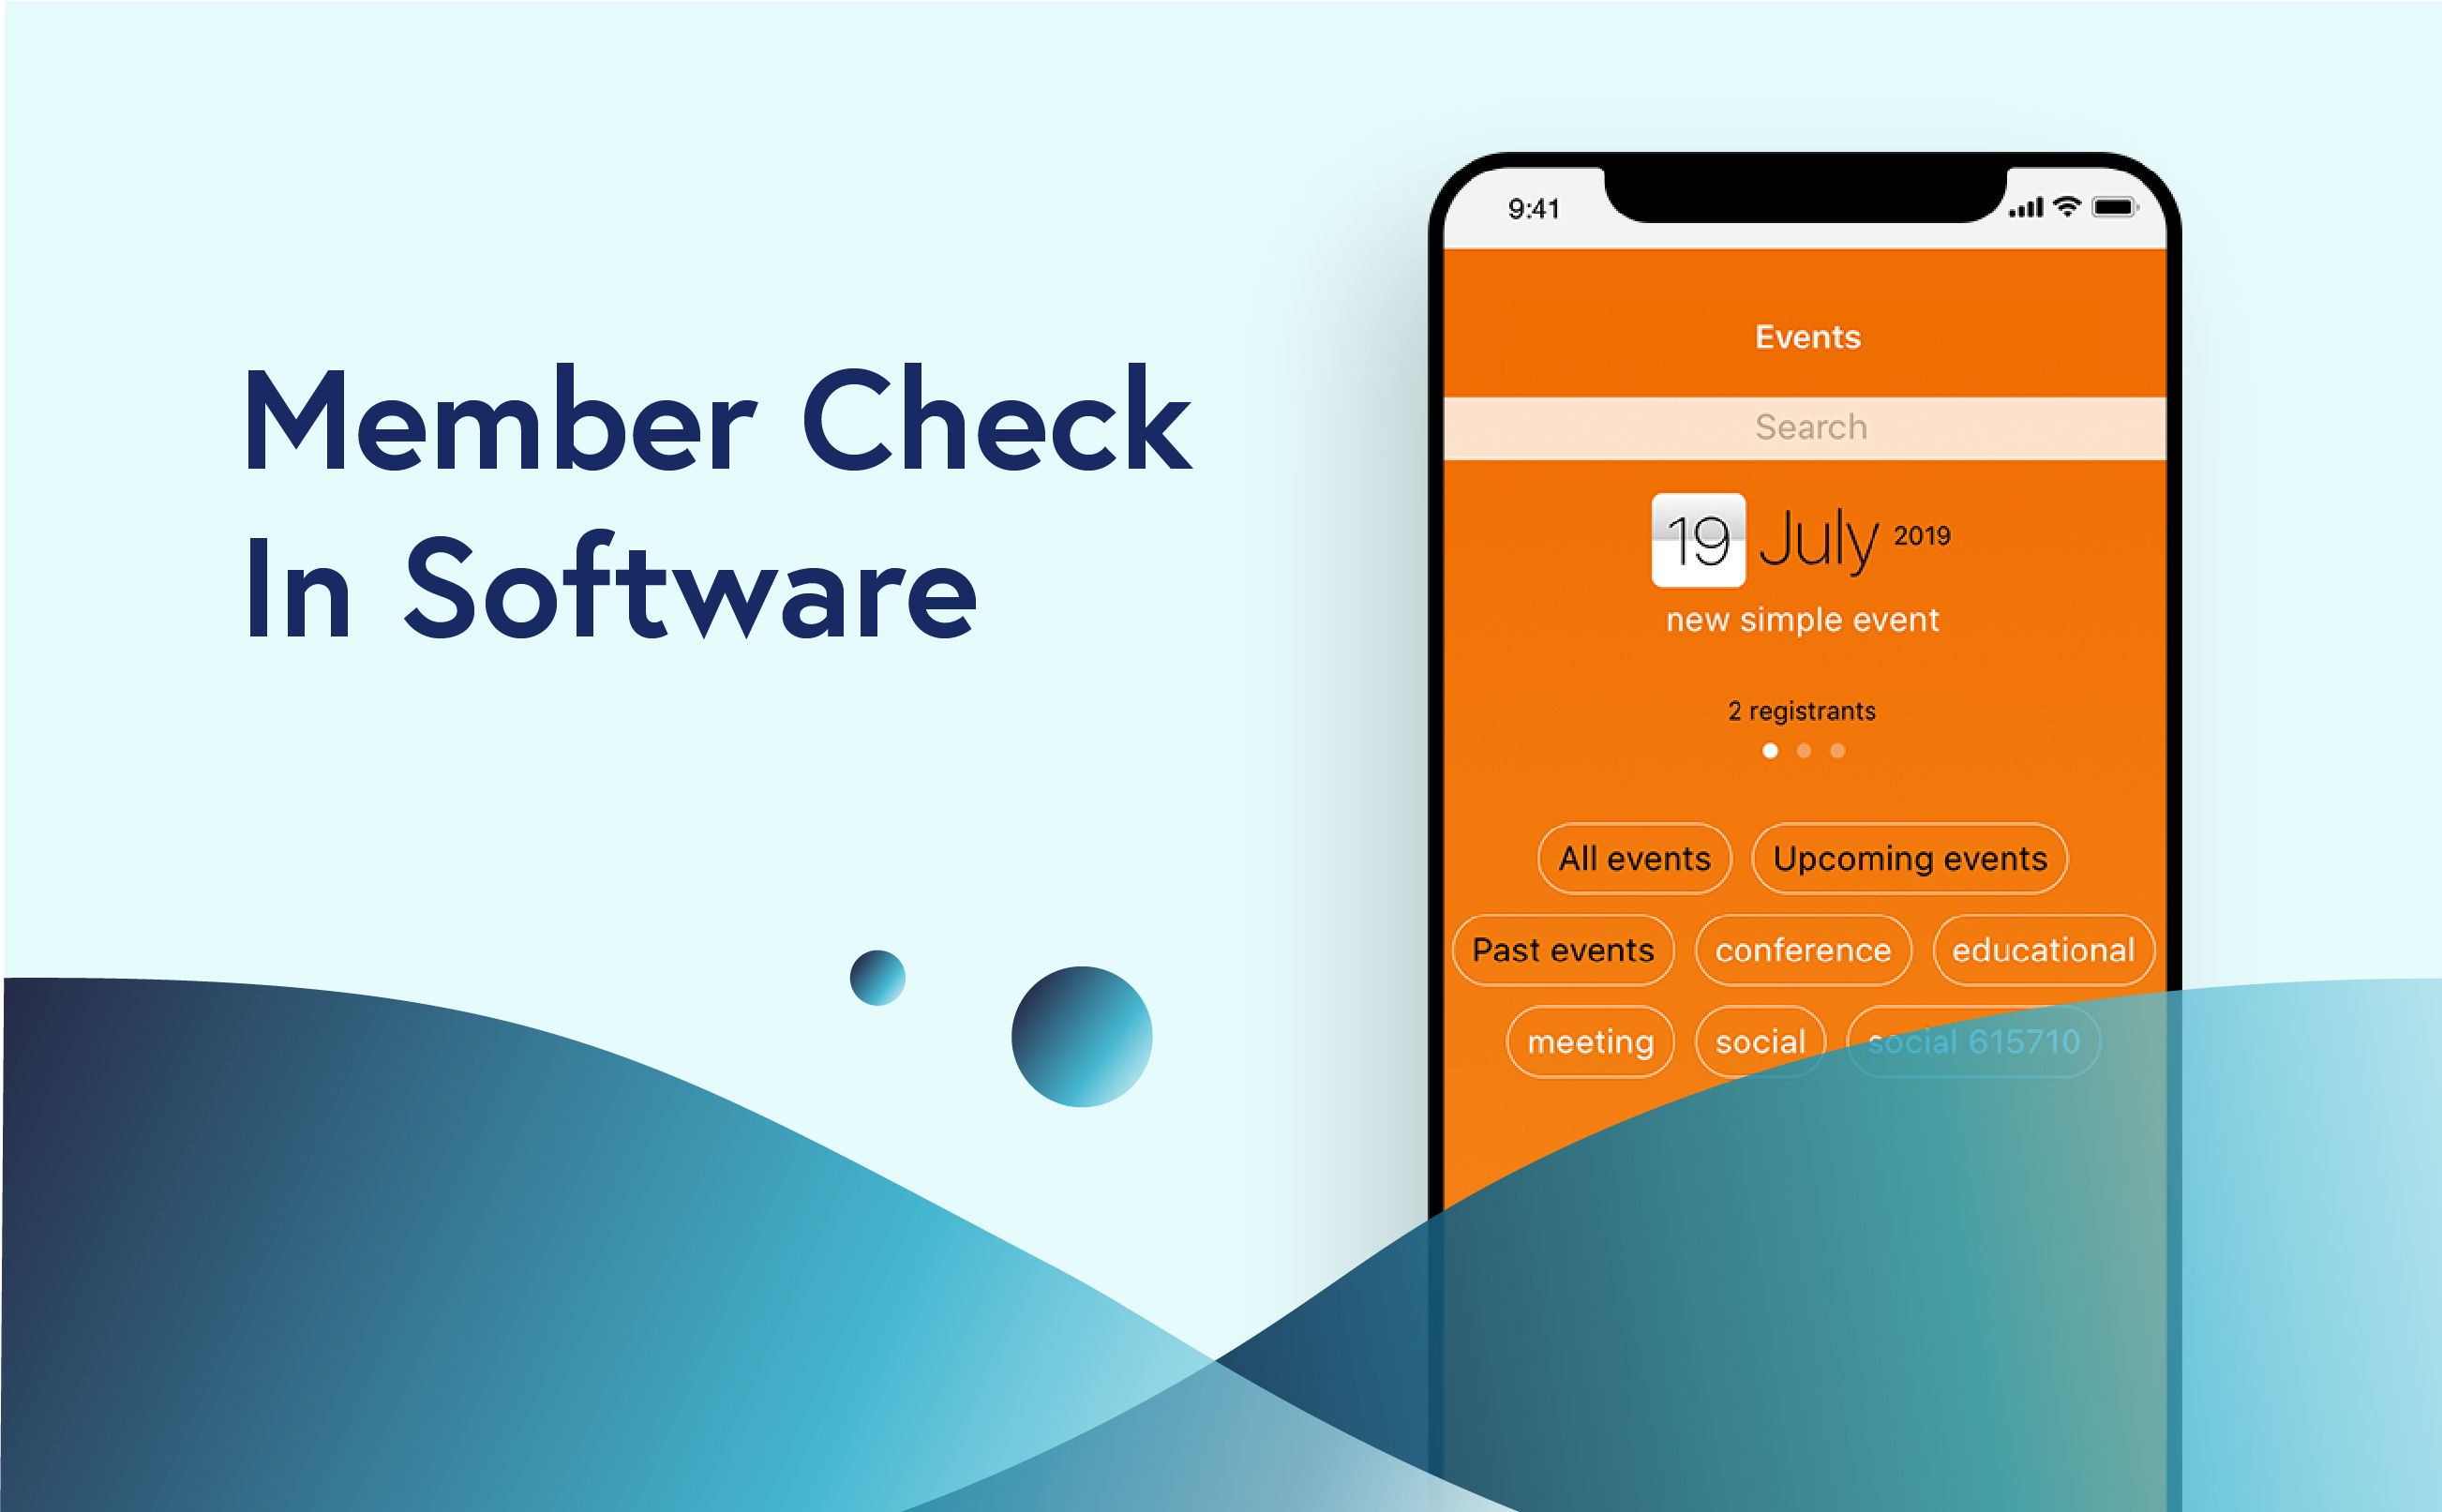 Member Check In Software